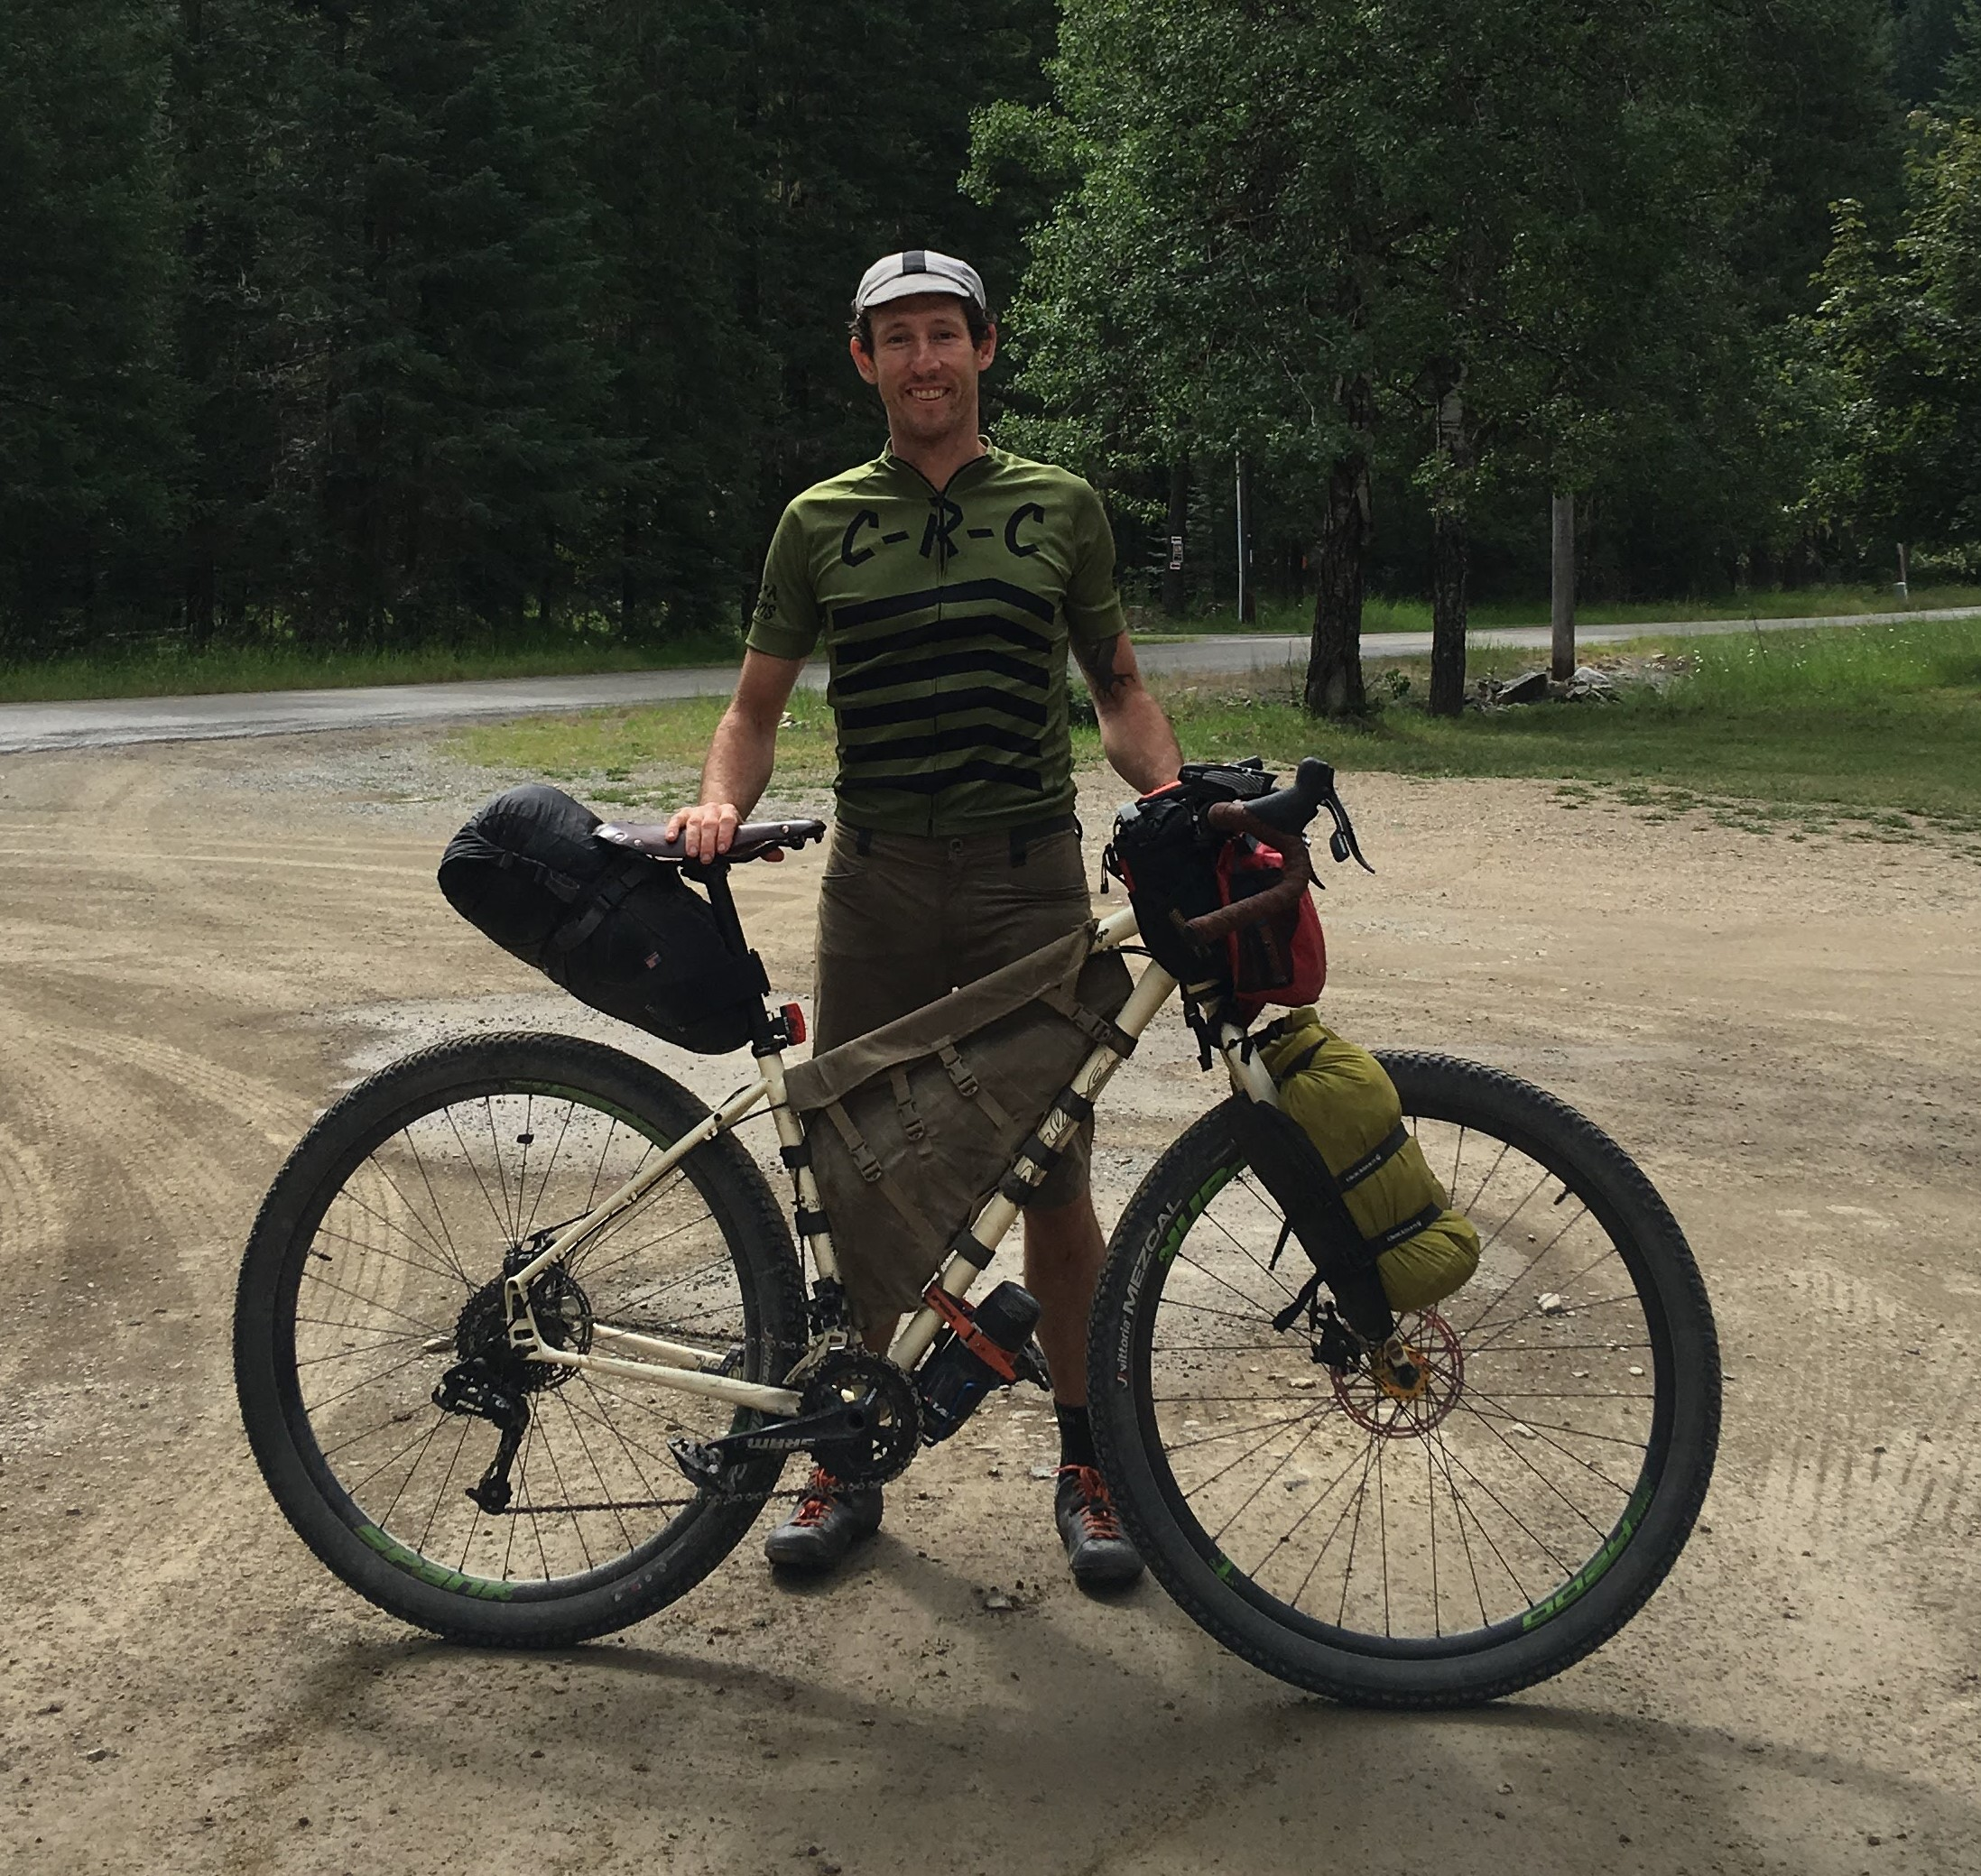 Todd Hunter stands with his bike